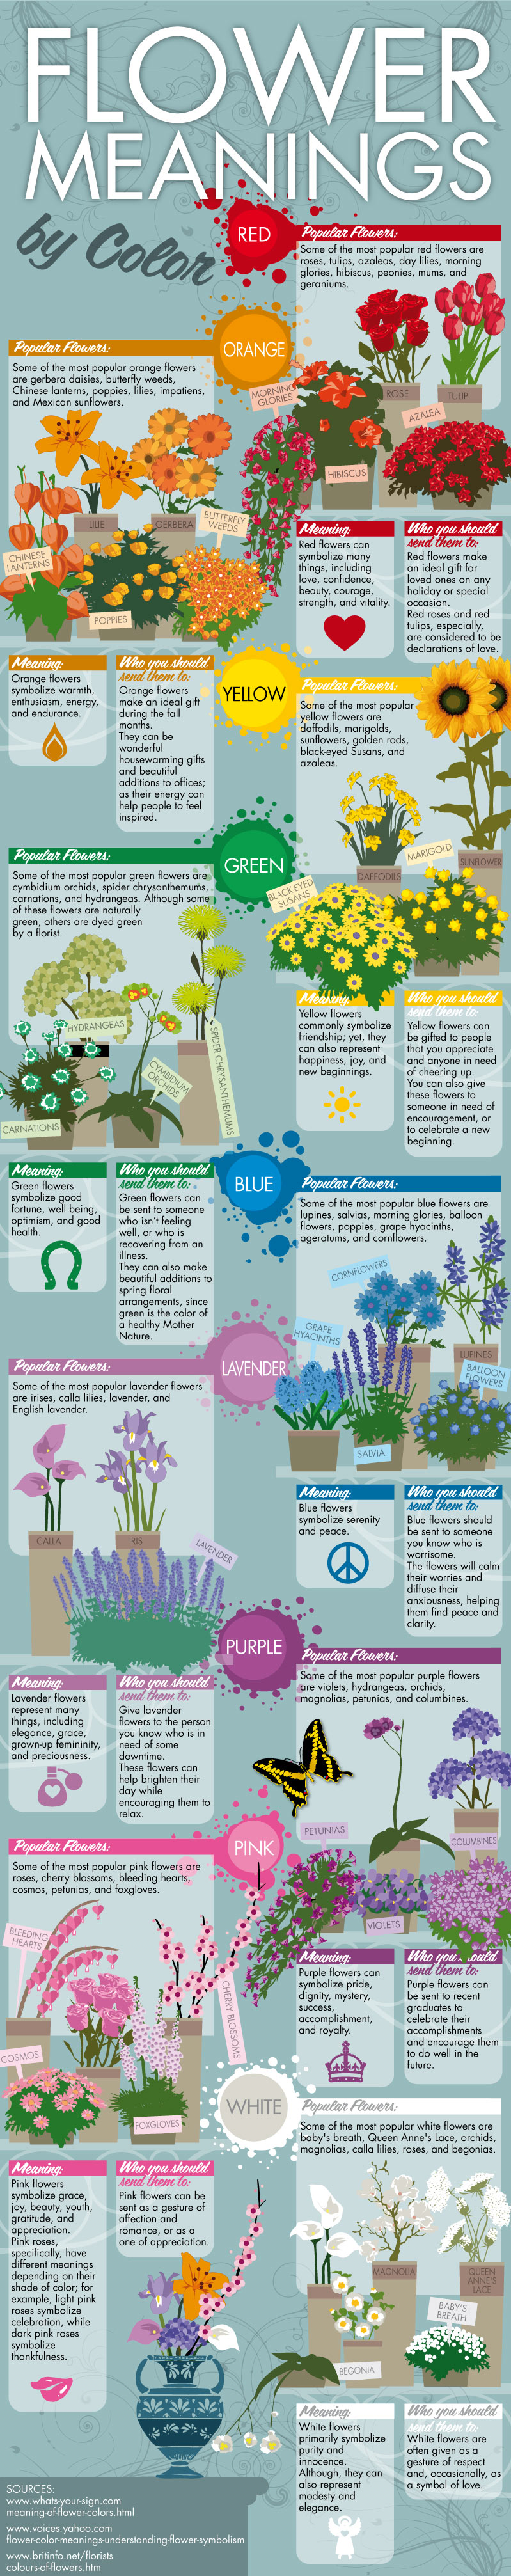 Infographic - Flower Meanings By Color